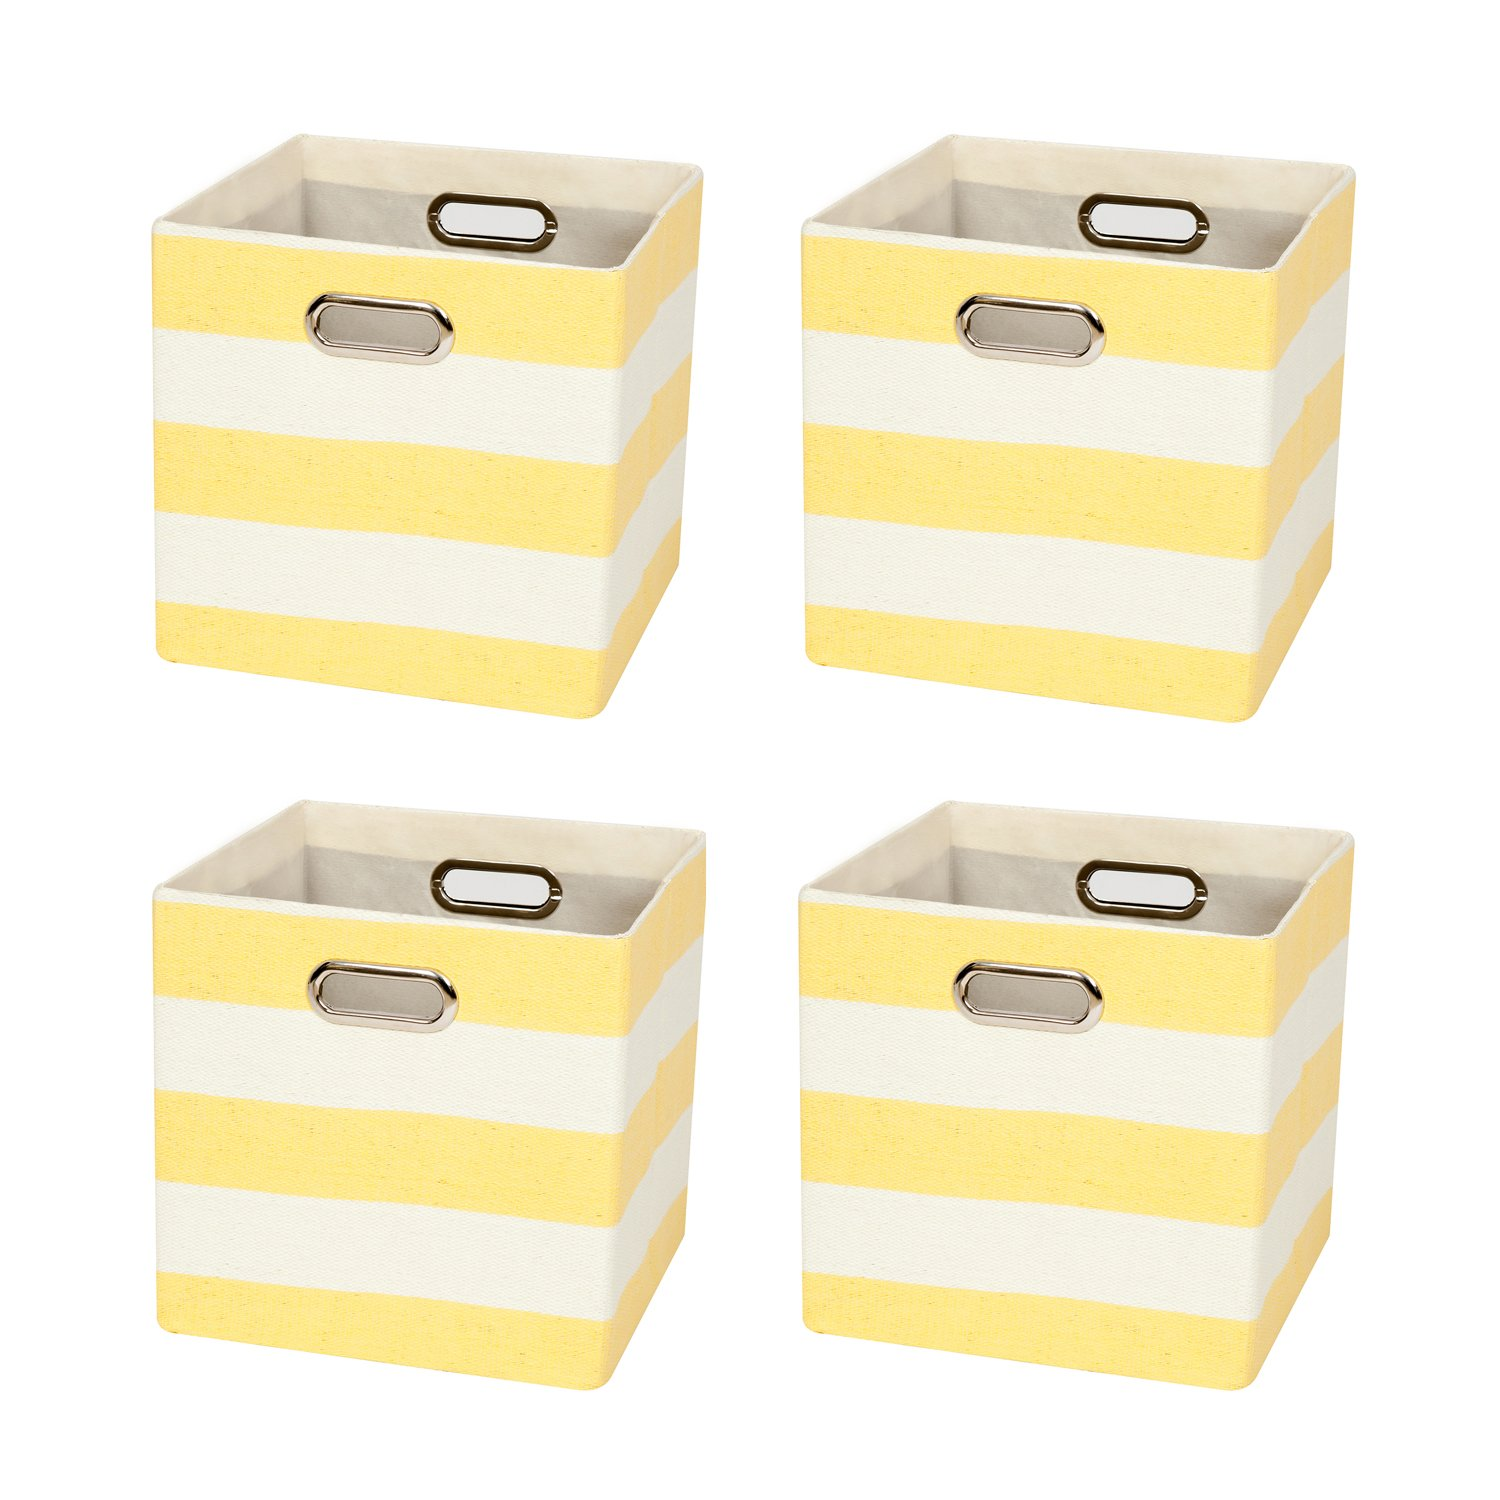 Posprica Collapsible Cube Organizers,Storage Cube Bins Boxes Basket Containers Drawers For Nurseries,Offices,Closets,Home Décor (4, Gerry Stripe) Home Décor (4 Roadi STORAGE-ROADI007